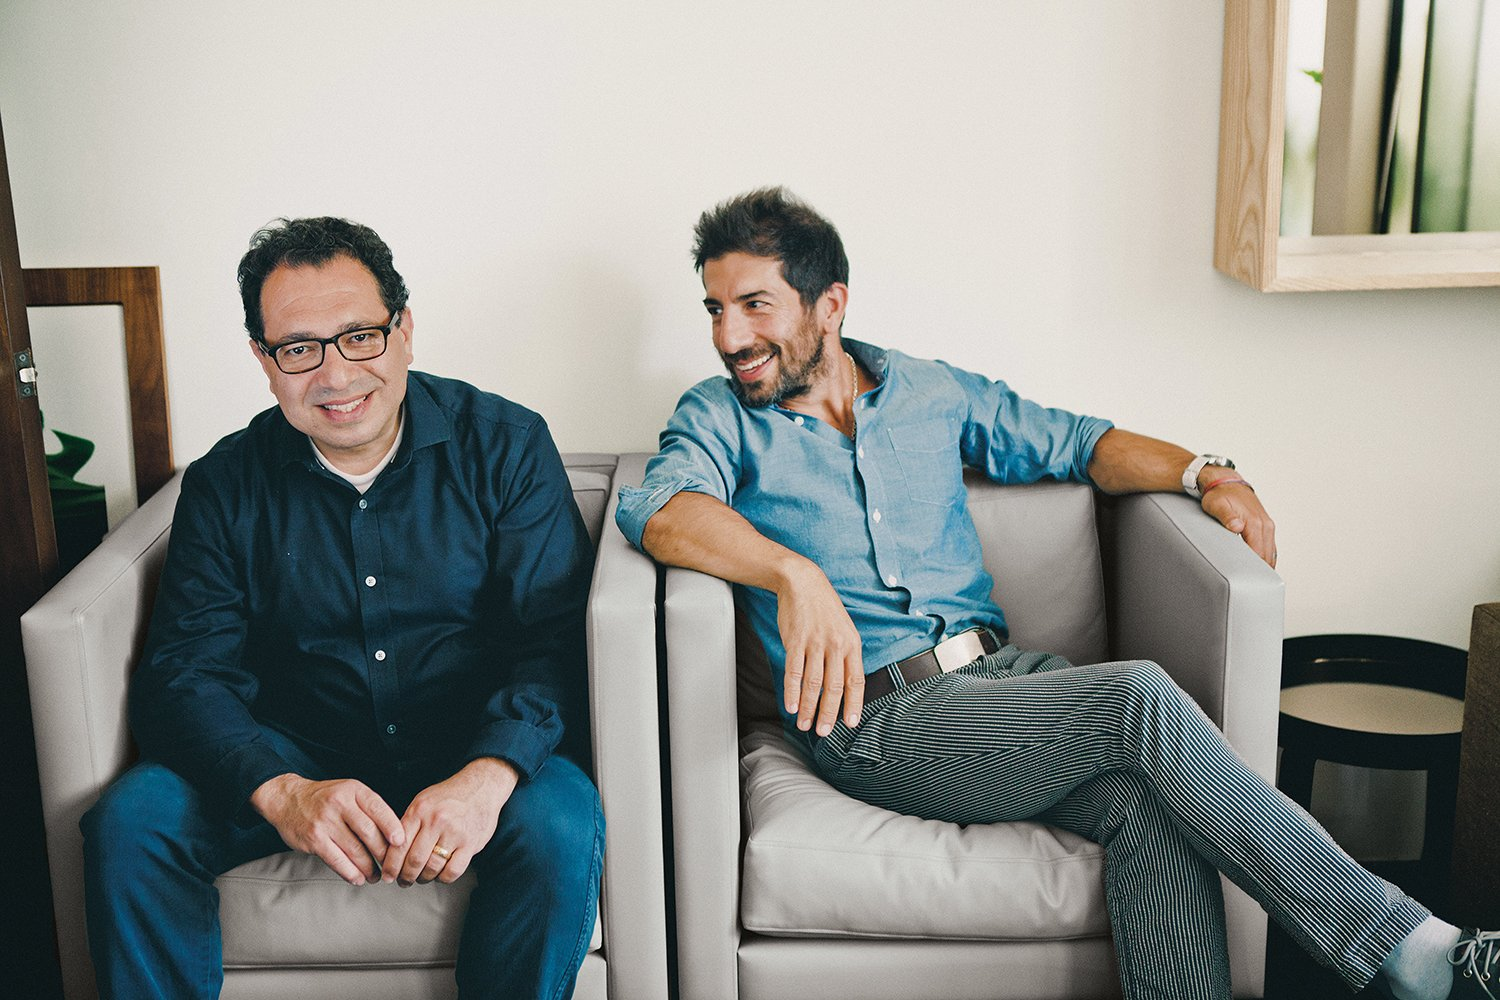 Designer Khodi Feiz (left) and his younger brother, Reza (right), congregate with their families every summer, usually in Europe. This year, Khodi prefaced a California road trip with his brood with a visit to Reza's home and studio in Los Angeles.  Photo 1 of 6 in The Feiz Brothers: Pursuing Clarity in Design